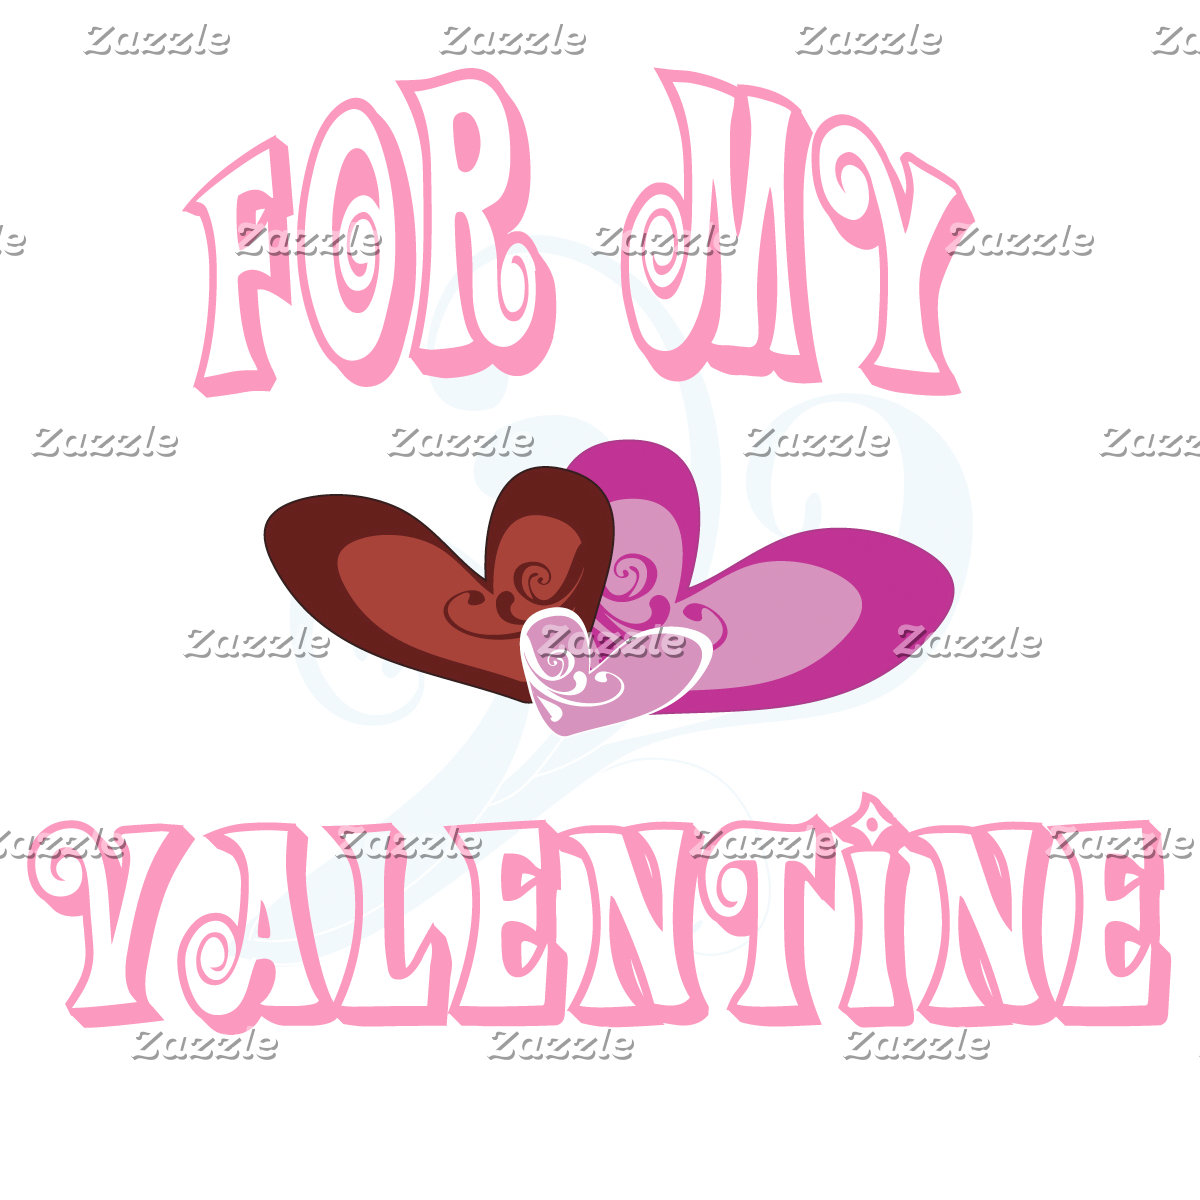 For My Valentine Gifts, T shirts, Vday Products